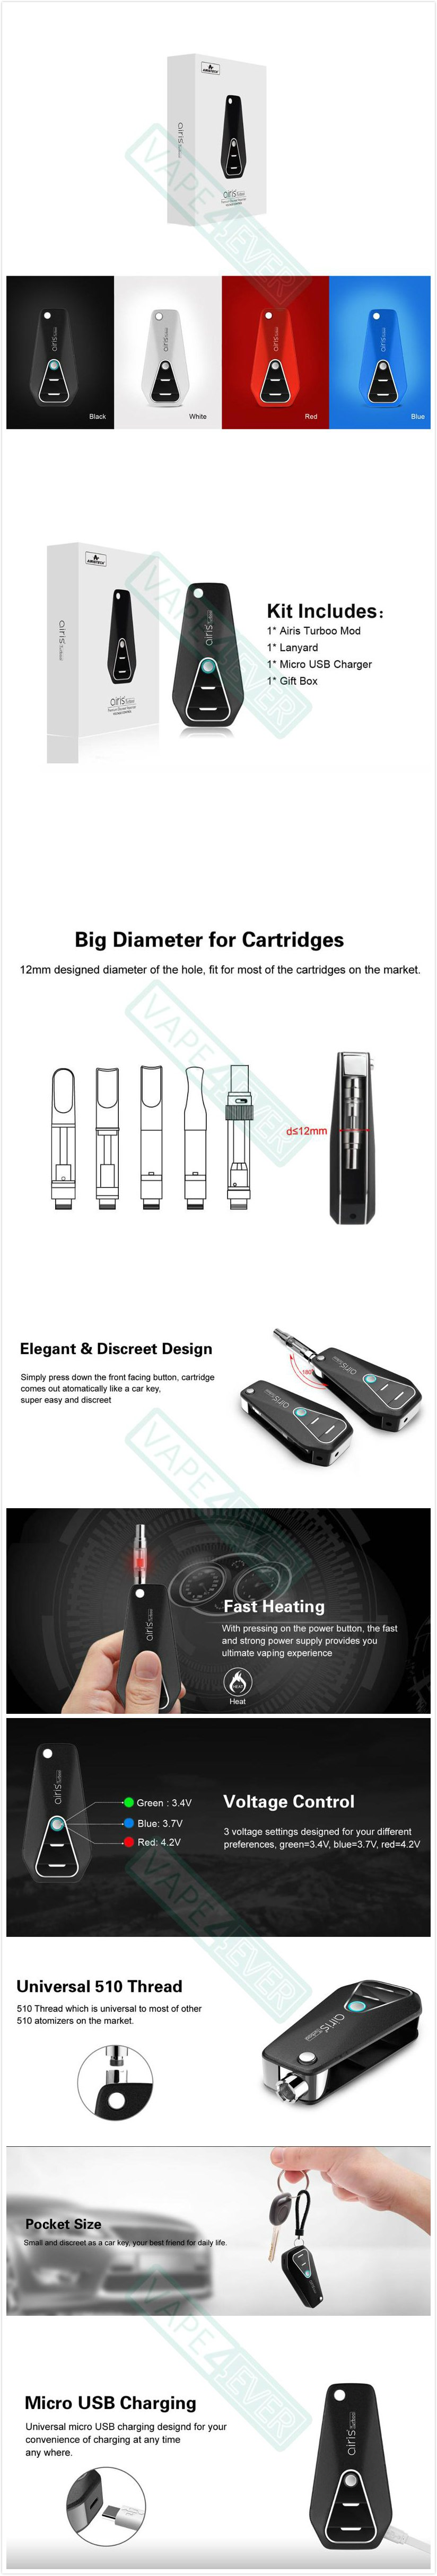 Airistech Airis Turboo Mod 510 Thread 450mAh Variable Voltage Battery Oil Vaporizer Instruction